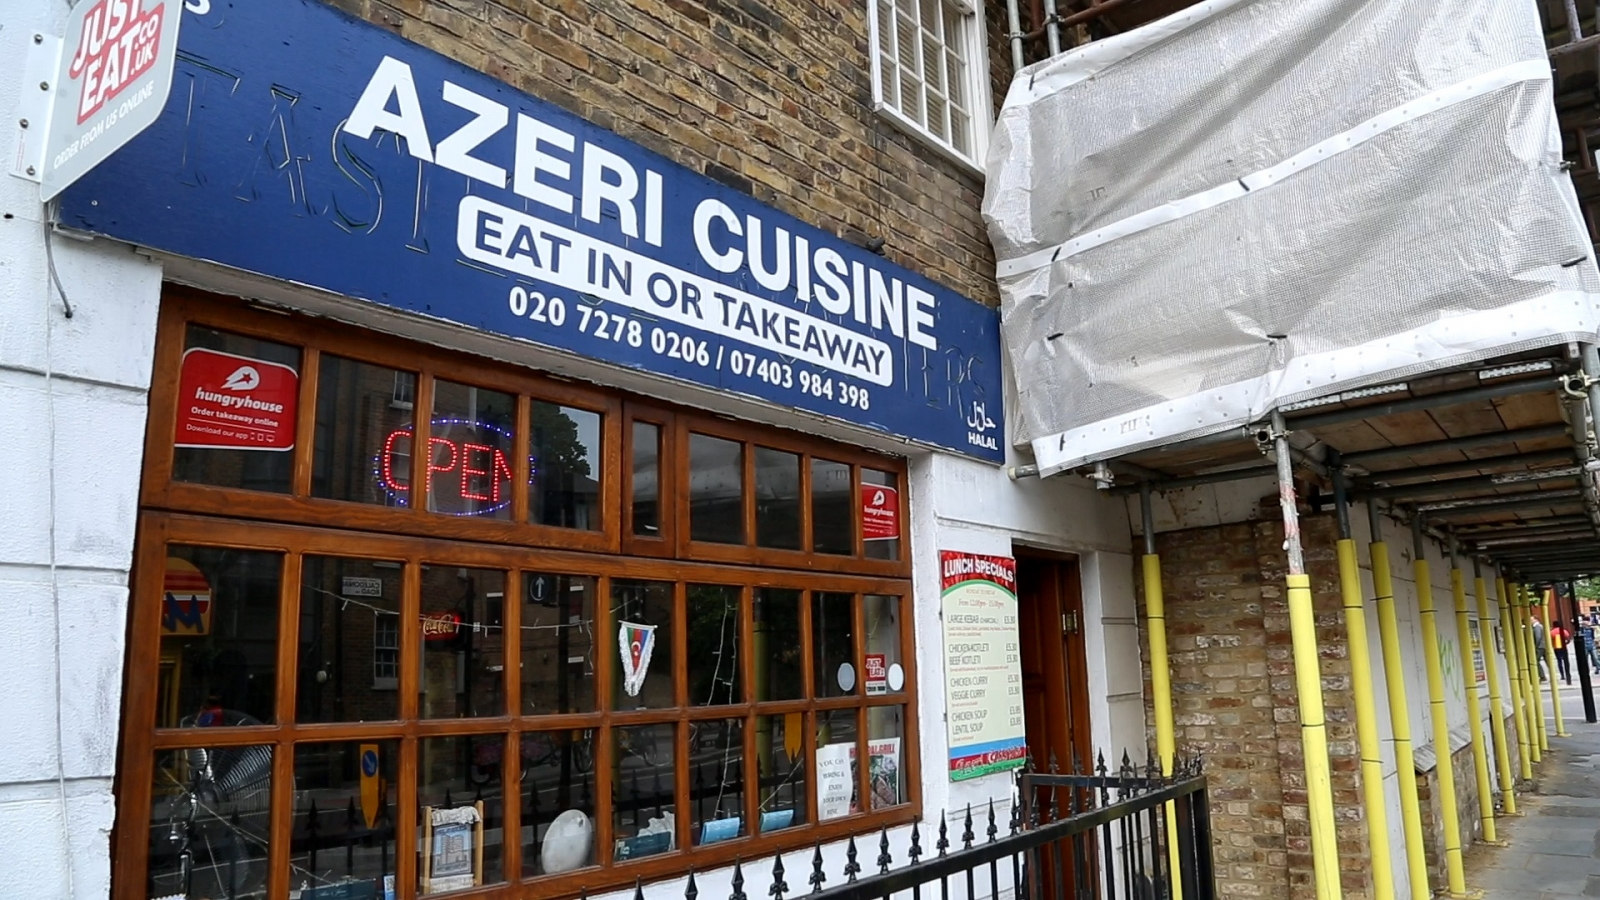 baku 2015 we watched the opening ceremony at one of ForAzerbaijani Cuisine London